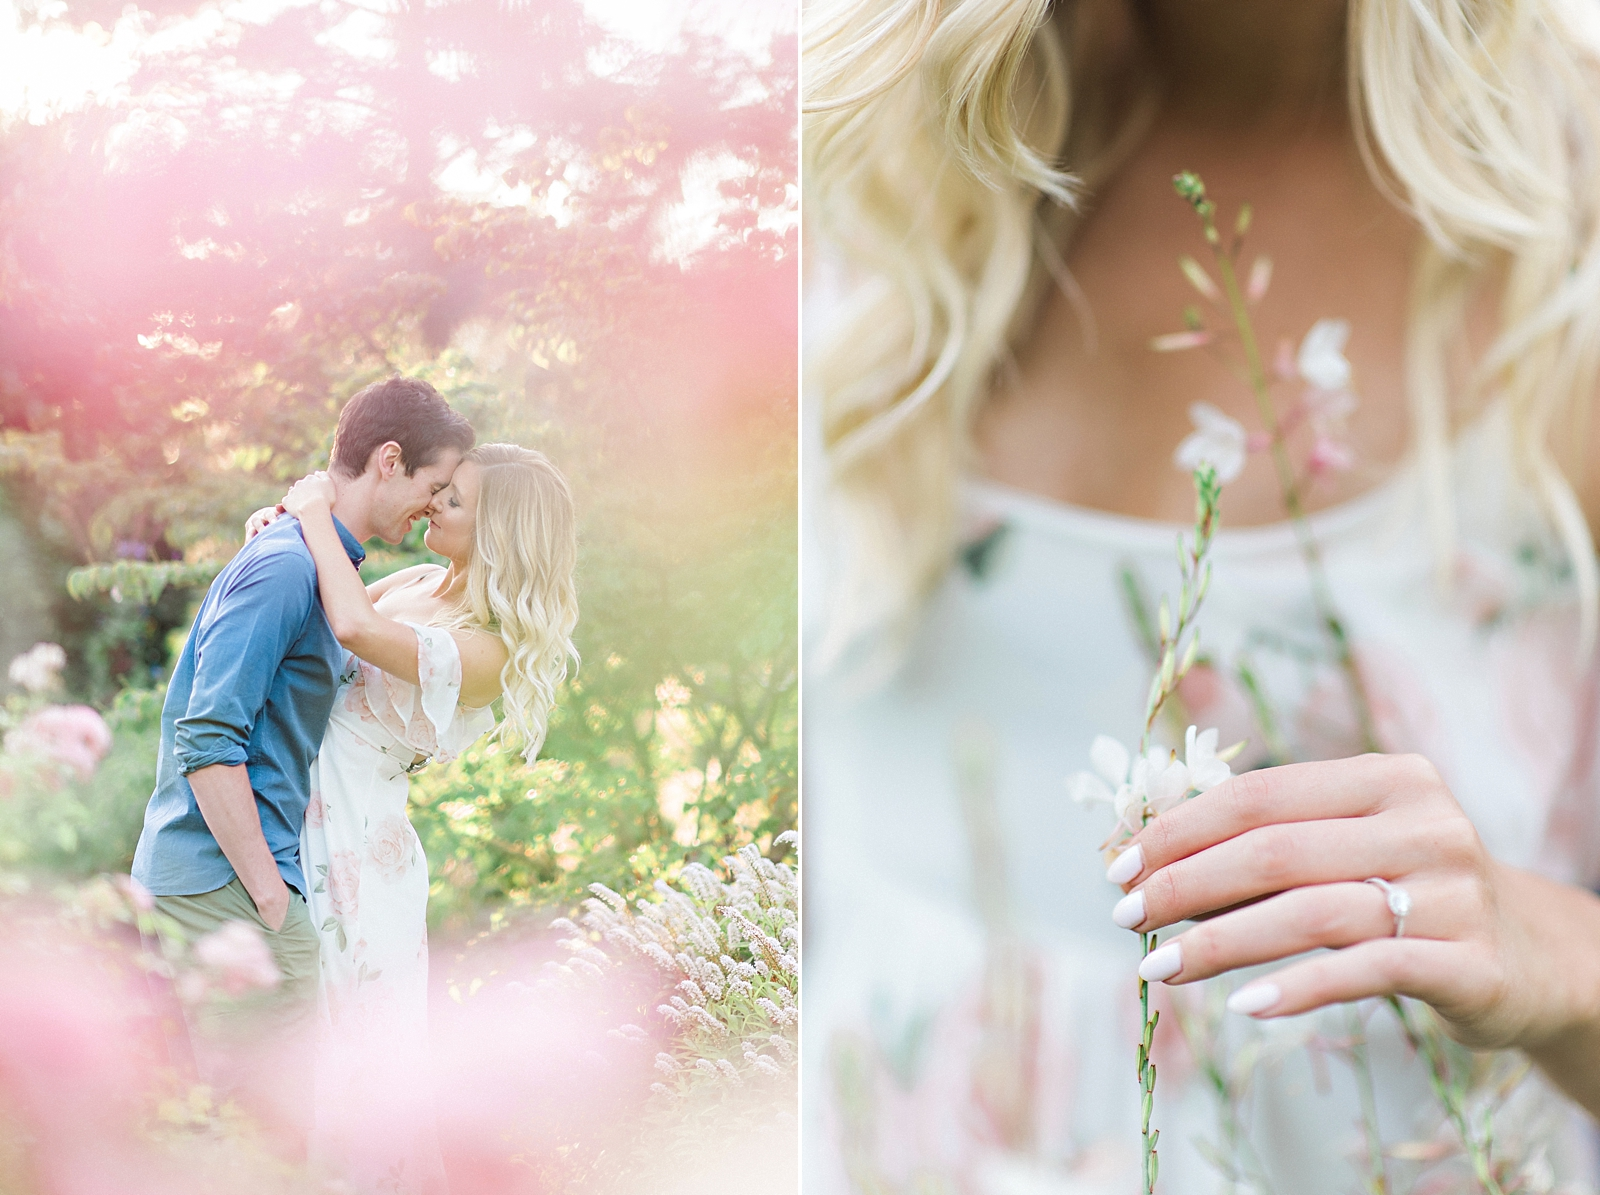 Halifax-Wedding-Photographer_Steph & Alex_Halifax Wedding Photography_Valley Engagement_01.jpg